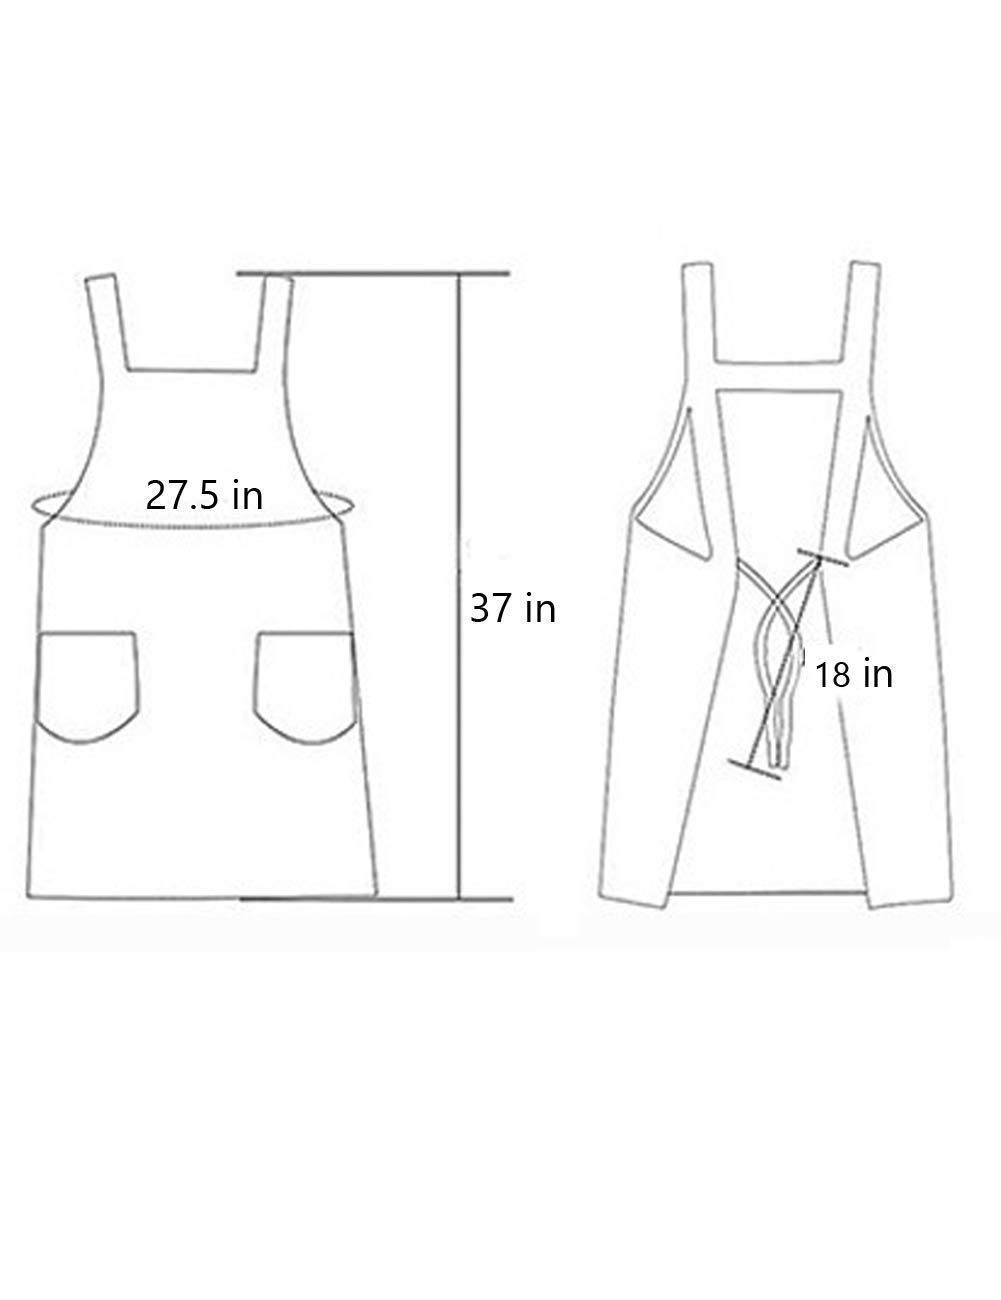 Cotton Personalized Bib Aprons with Pockets for Chef,Waitress,Grandma Suitable for Baking,Grilling,Painting Even Fit for Arts,Holiday Print Black Plaid Kinsley Cute Cooking Apron for Women